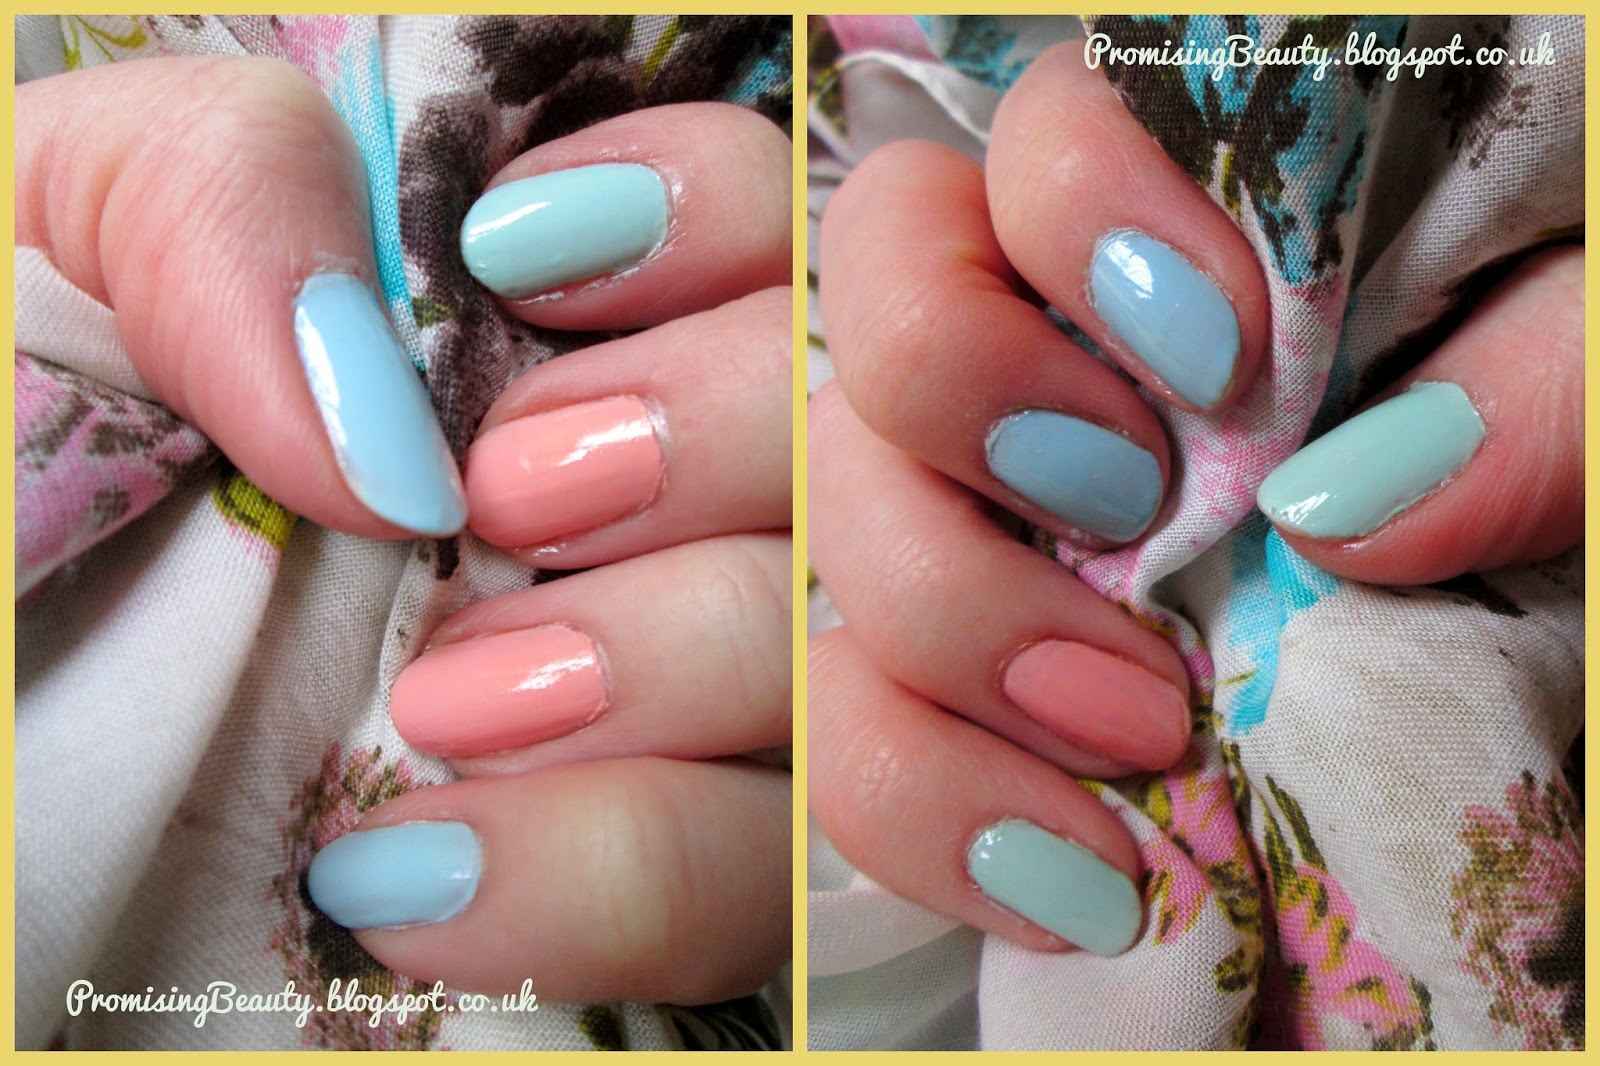 Nail polish summer springtime manicure colours, base colours of pastel shades of mint green, light blue and peach orange. Make-up revolution Cool Days, Barry M blue Moon and Peach Melba nail polishes.